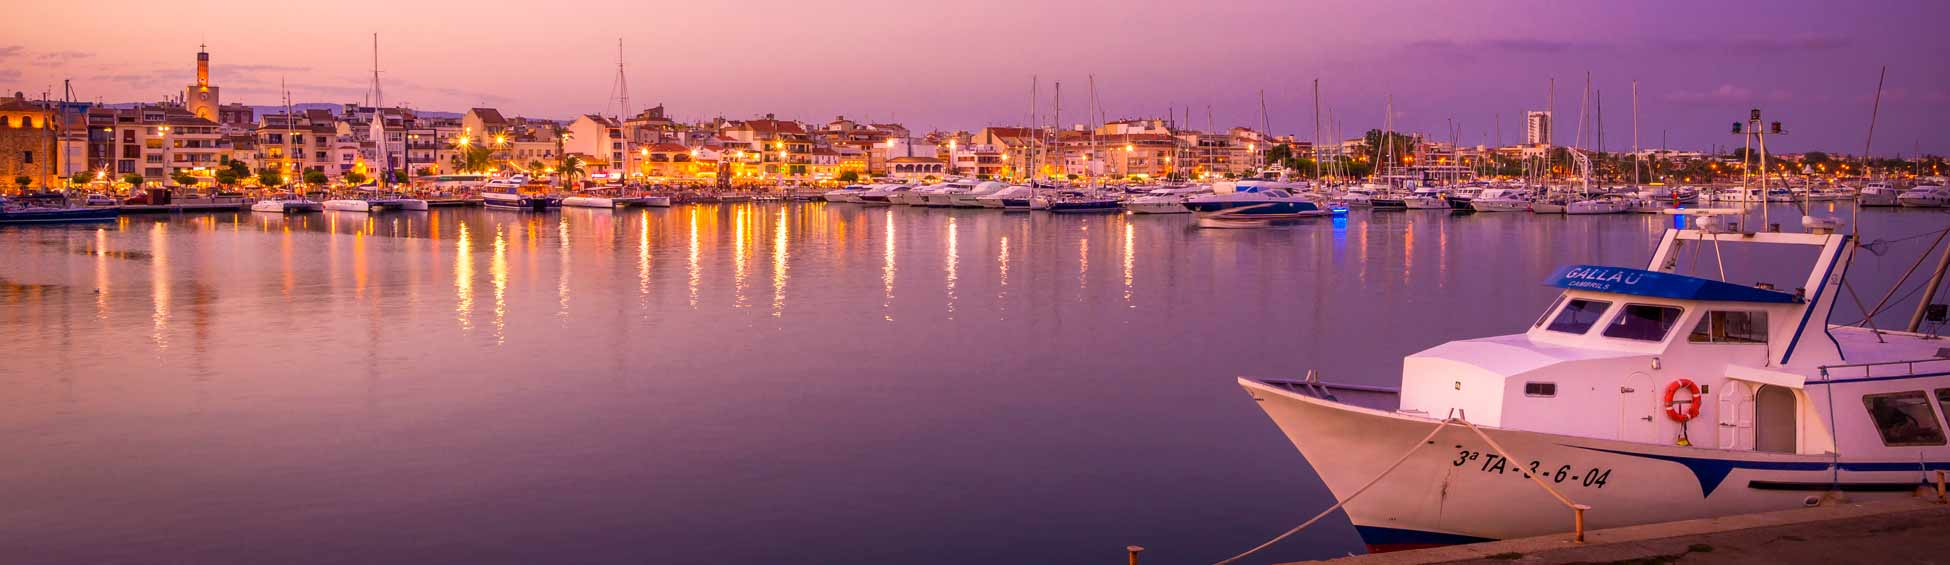 Tourism In Cambrils 2019 What Visit Things To Do And See